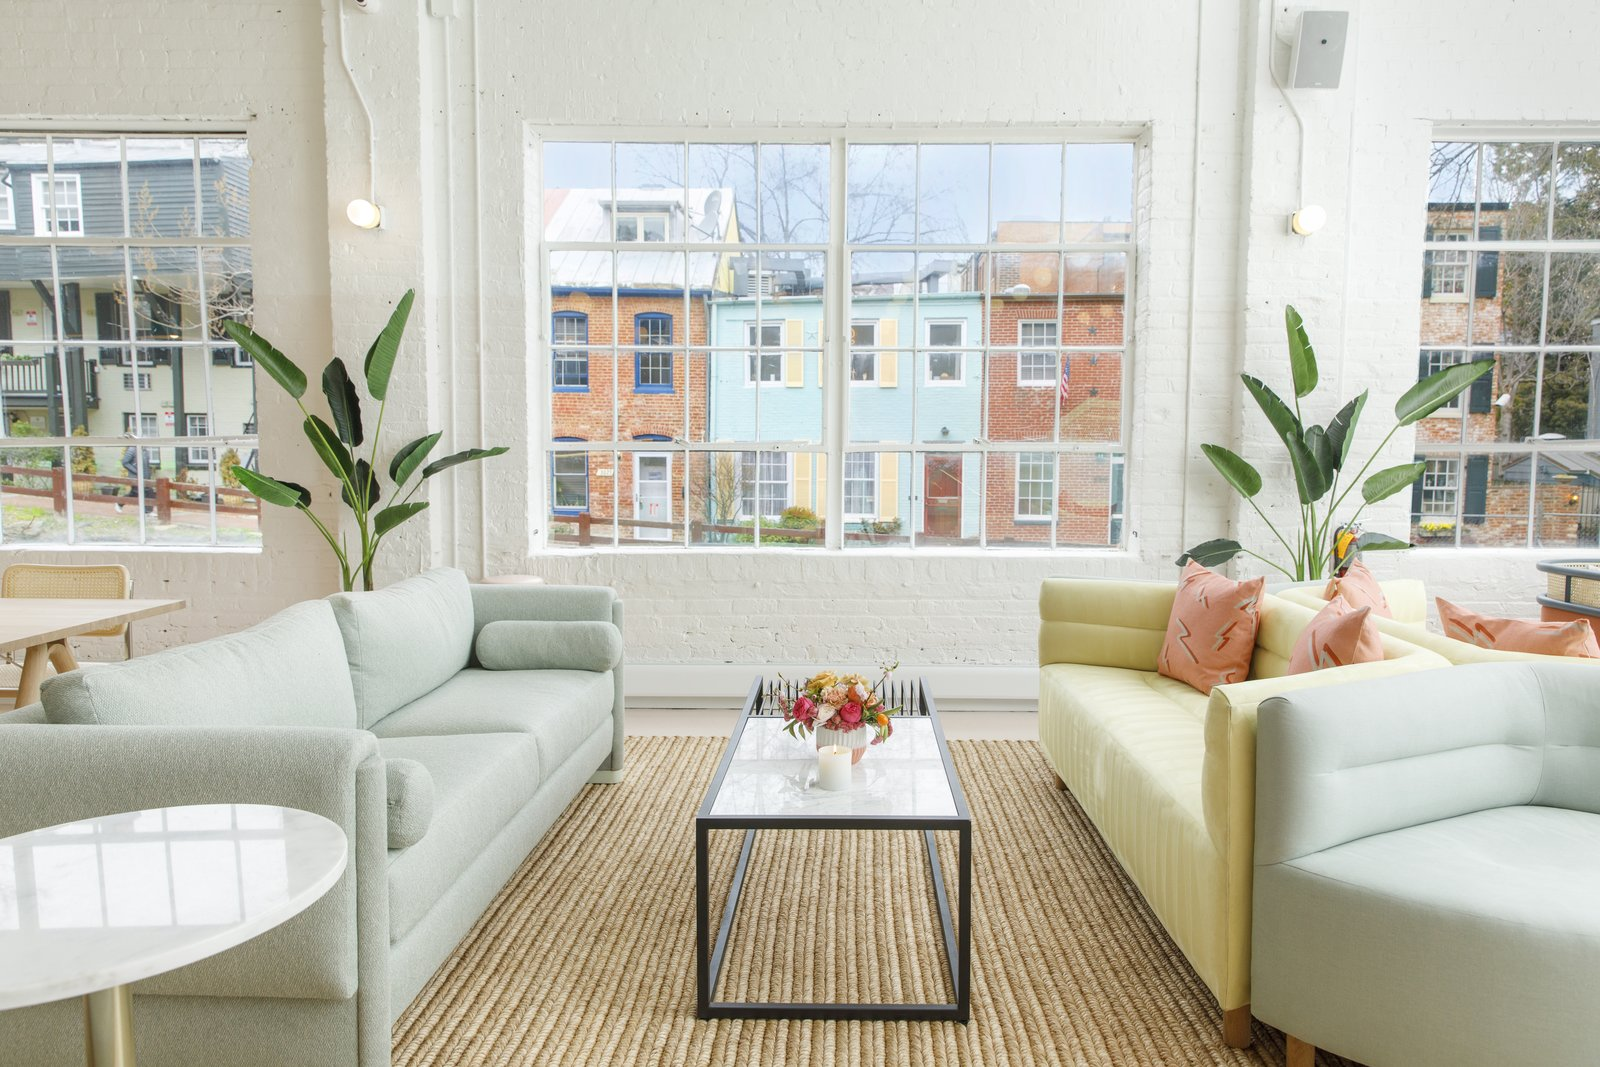 Living Room, Wall Lighting, Rug Floor, End Tables, Light Hardwood Floor, Sofa, Coffee Tables, and Chair The pastel-colored couches echo the facades on the row houses lining the C&O Canal outside.    Photo 11 of 13 in Feast Your Eyes on Washington D.C.'s Newest Co-Working Space For Women